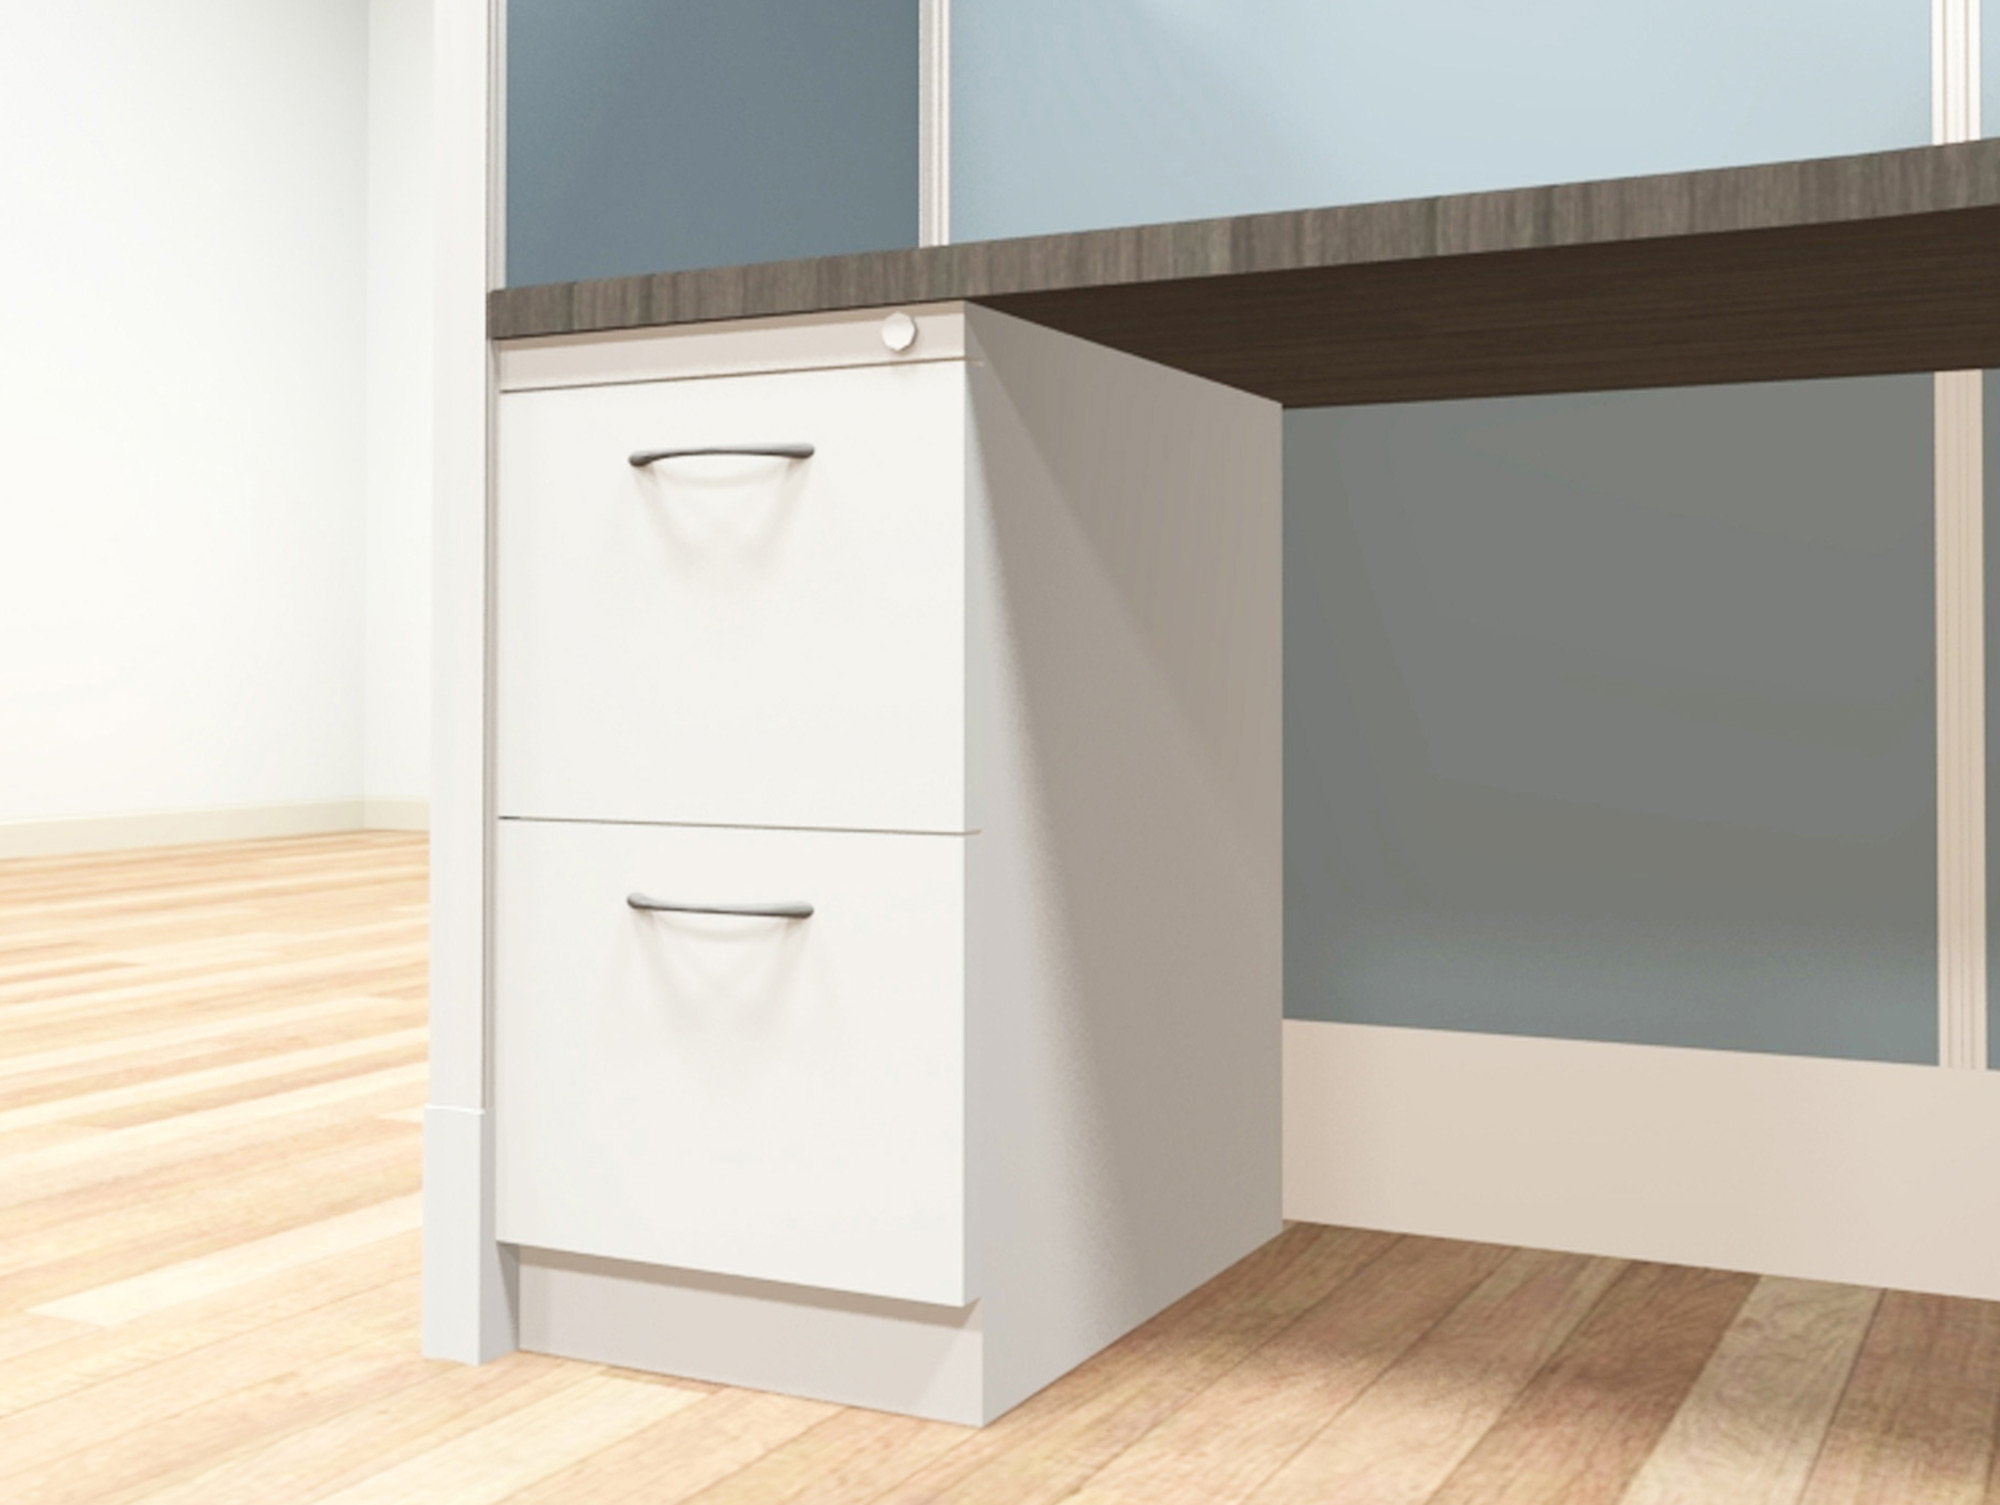 8x12 modular workstations from AIS - a �file-file� pedestal is an under-surface storage cabinet with two deep drawers designed for hanging files. Lock and key secures all drawers from unwanted visitors.